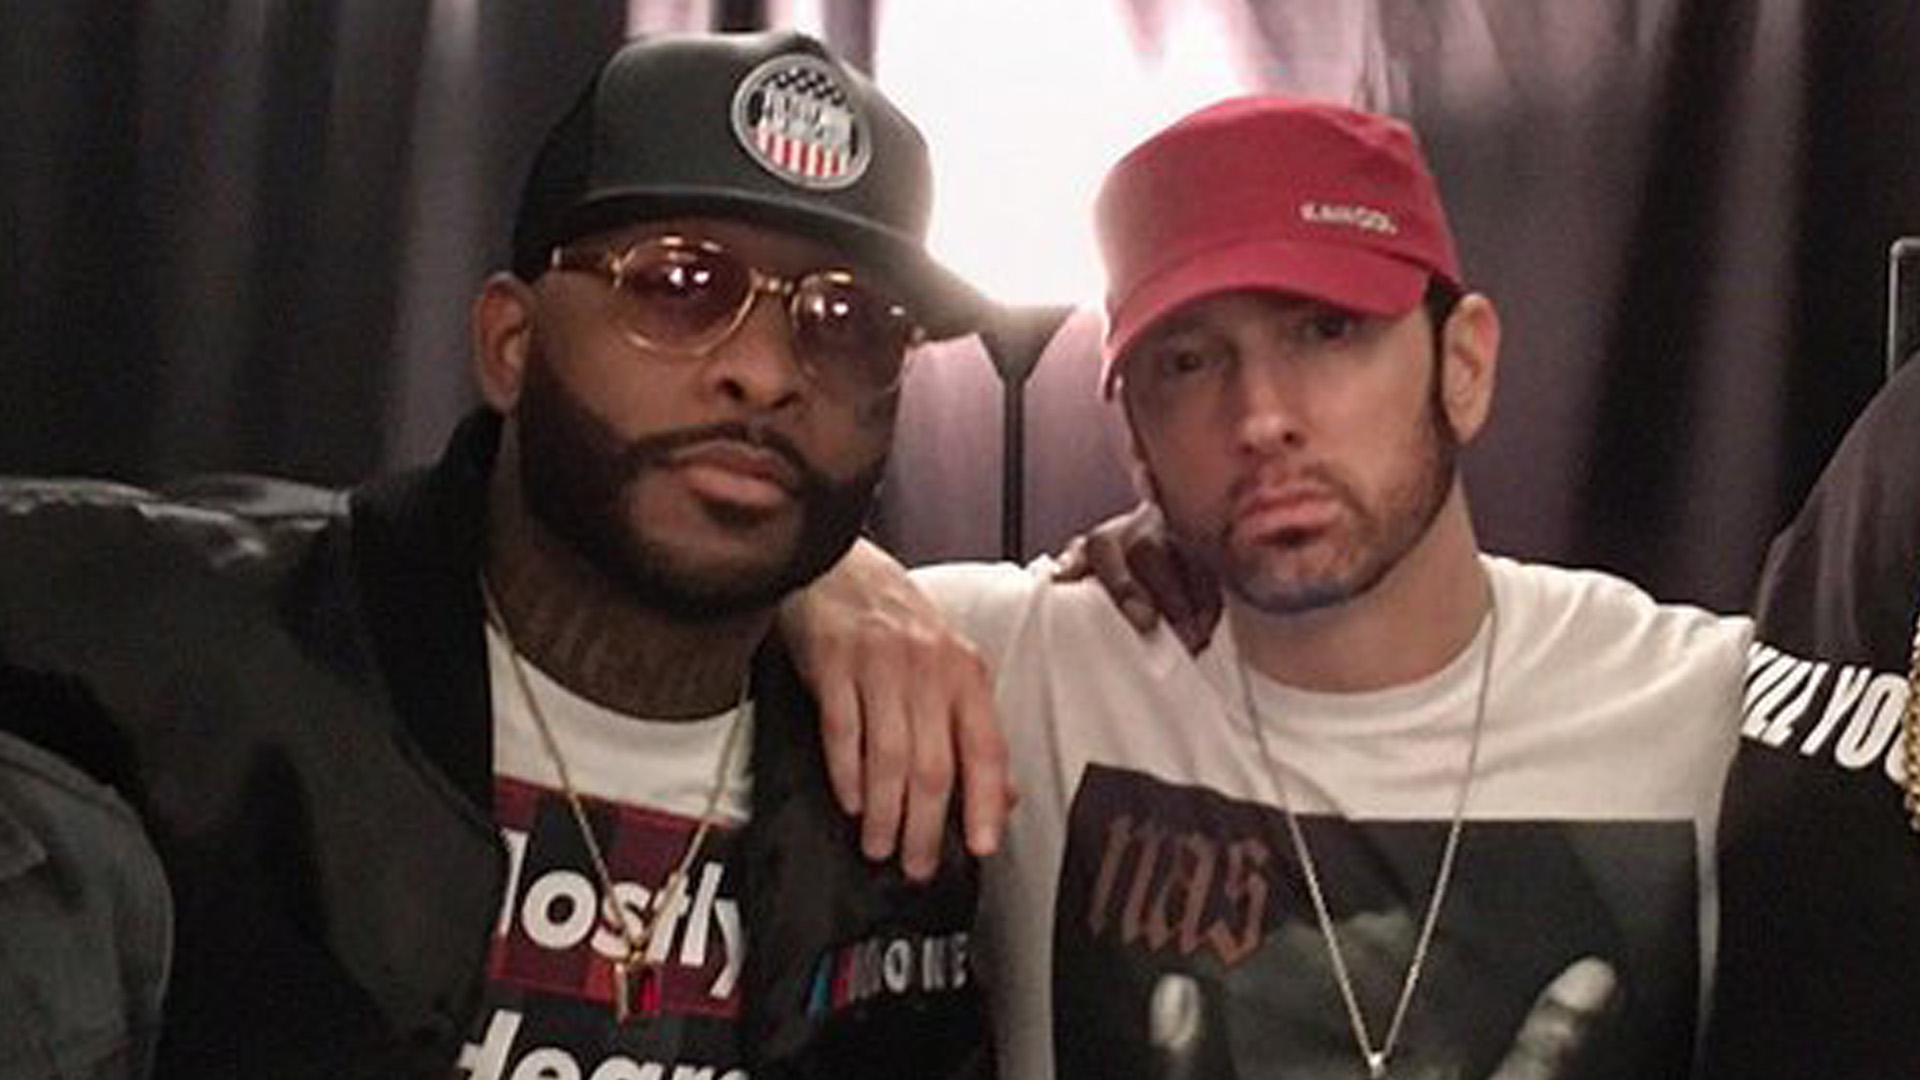 Eminem and Royce 5'9